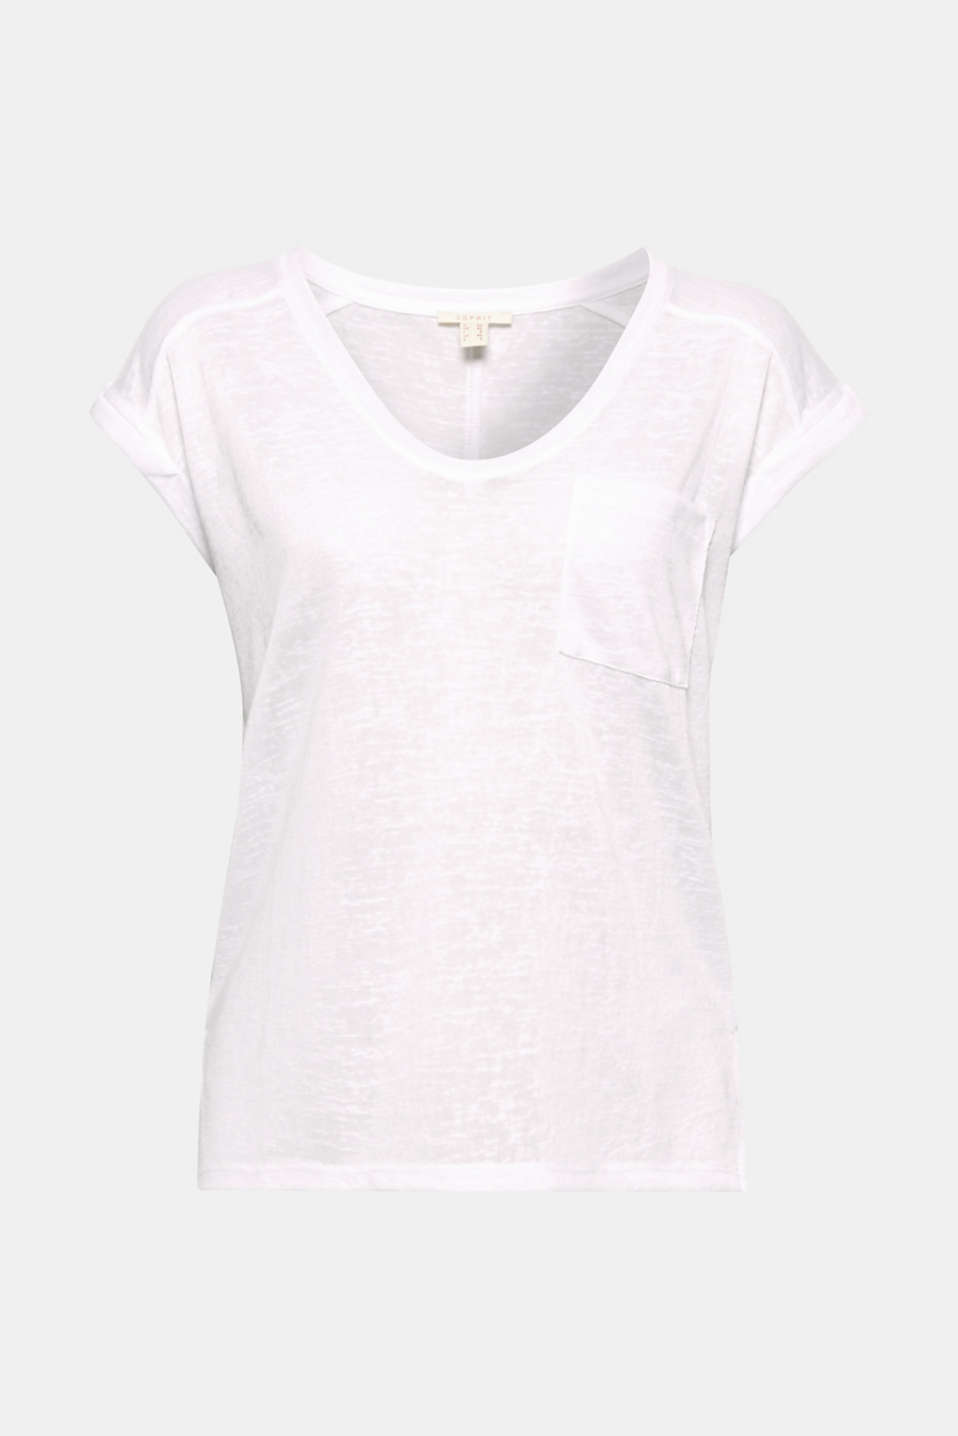 This casual T-shirt gets a particularly exciting look from the semi-sheer slub texture.